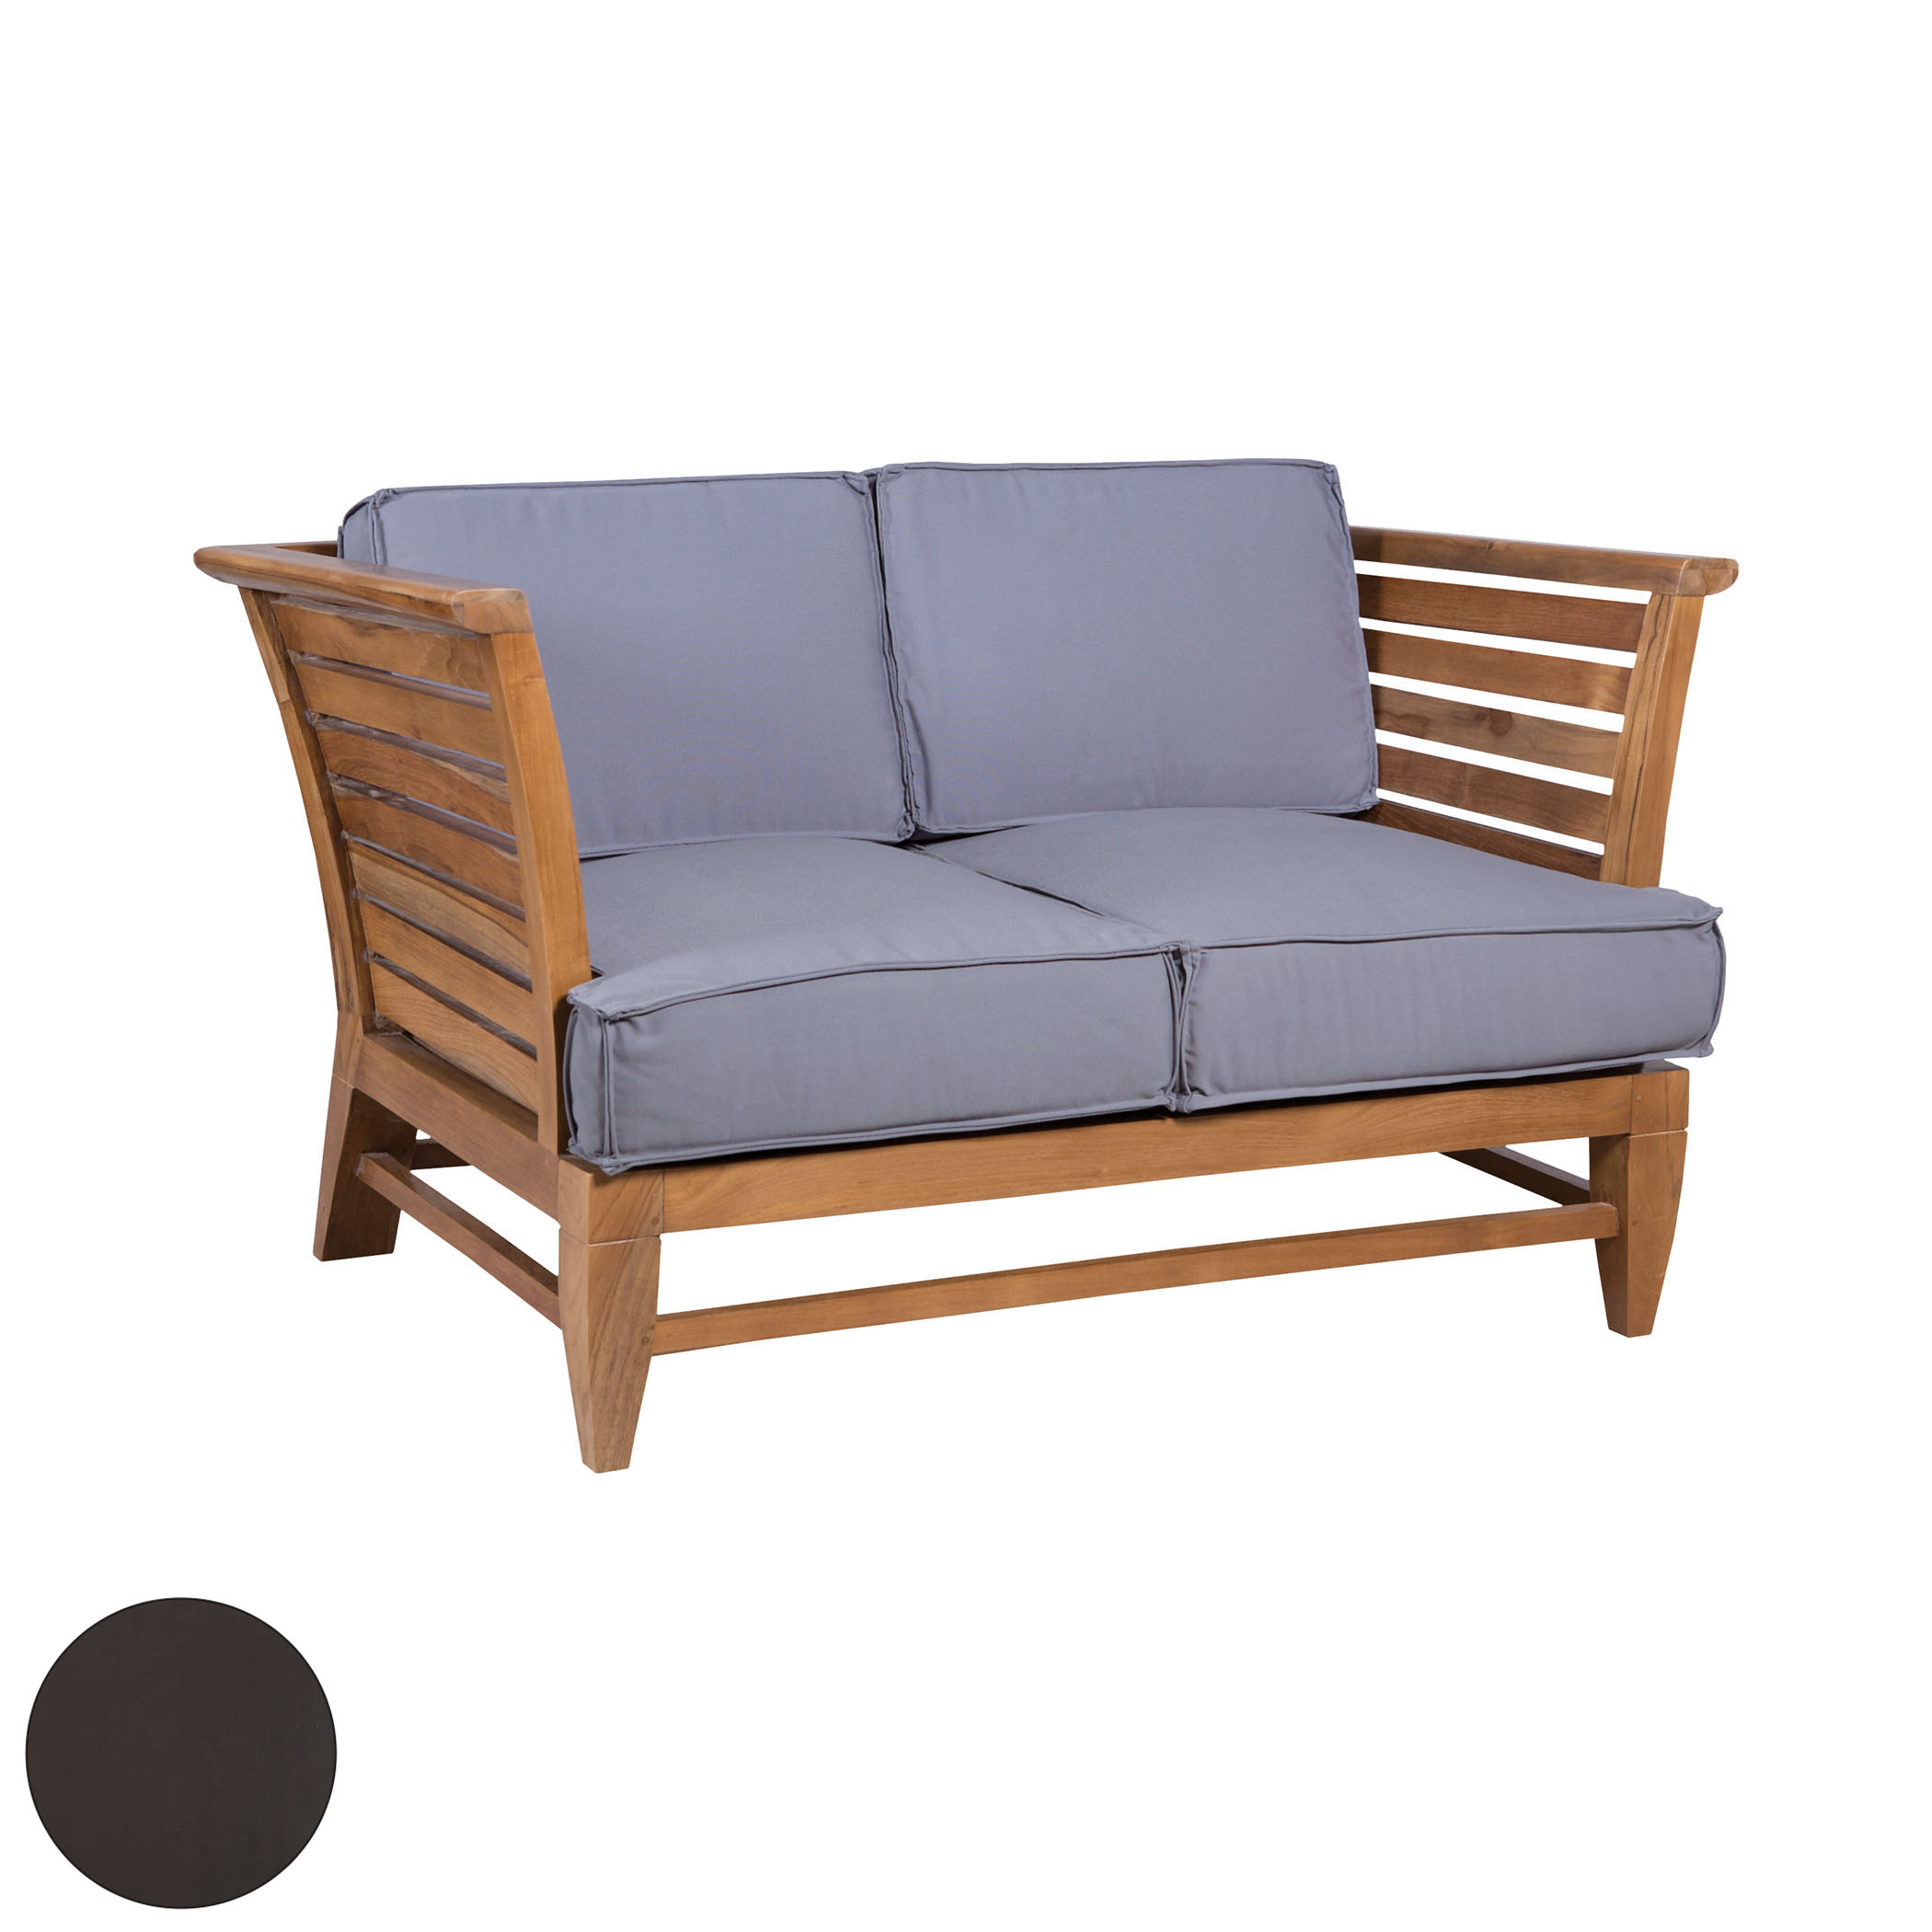 Galveston Pier Love Seat 6517502AS | ELK Home